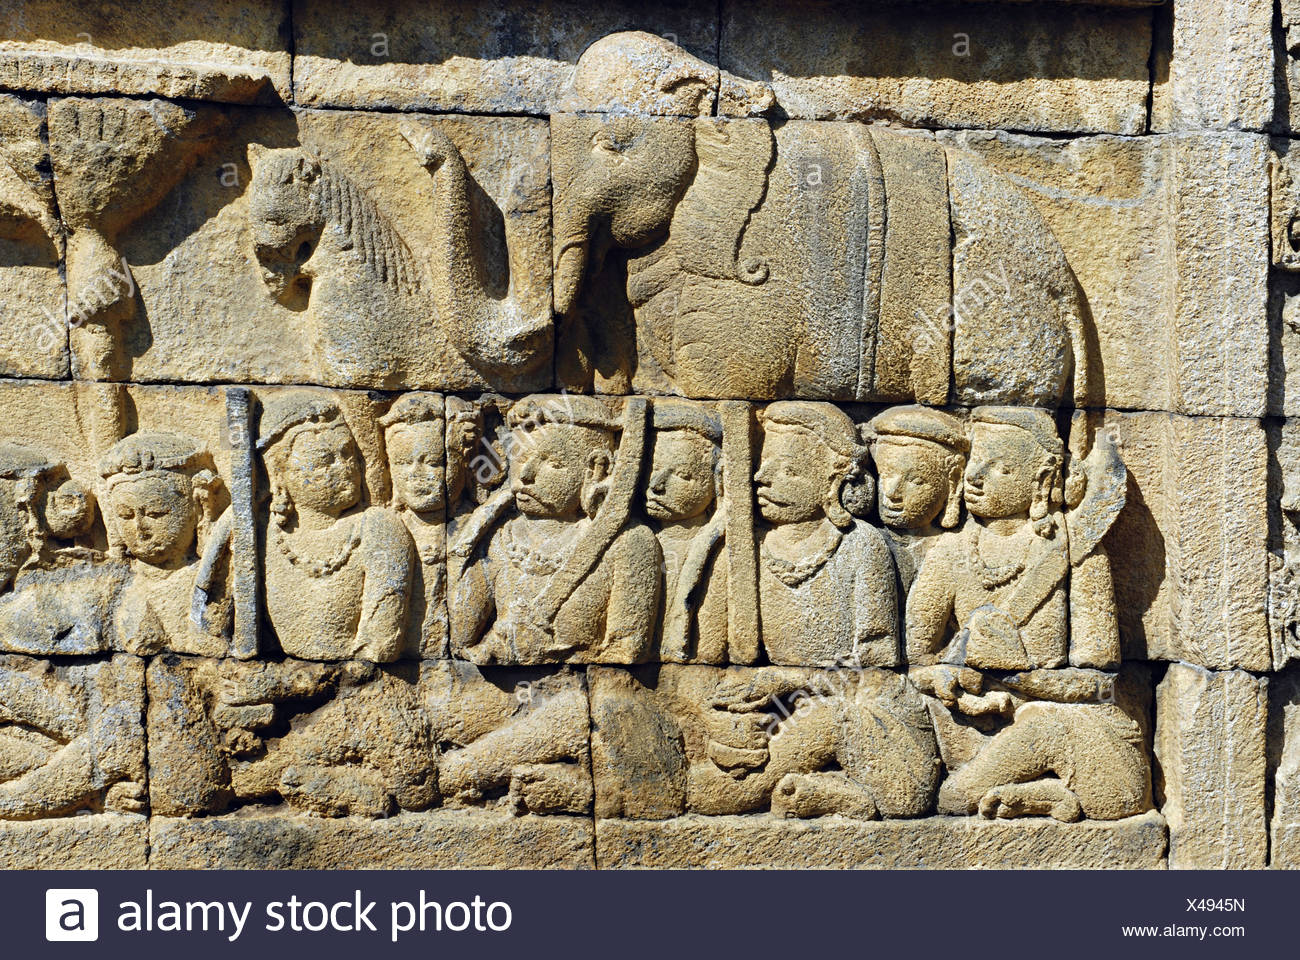 Indonesia-Java, Borobudur, Warriors seated cross-legged with sword and  stalk on their shoulder, behind them is the depiction of